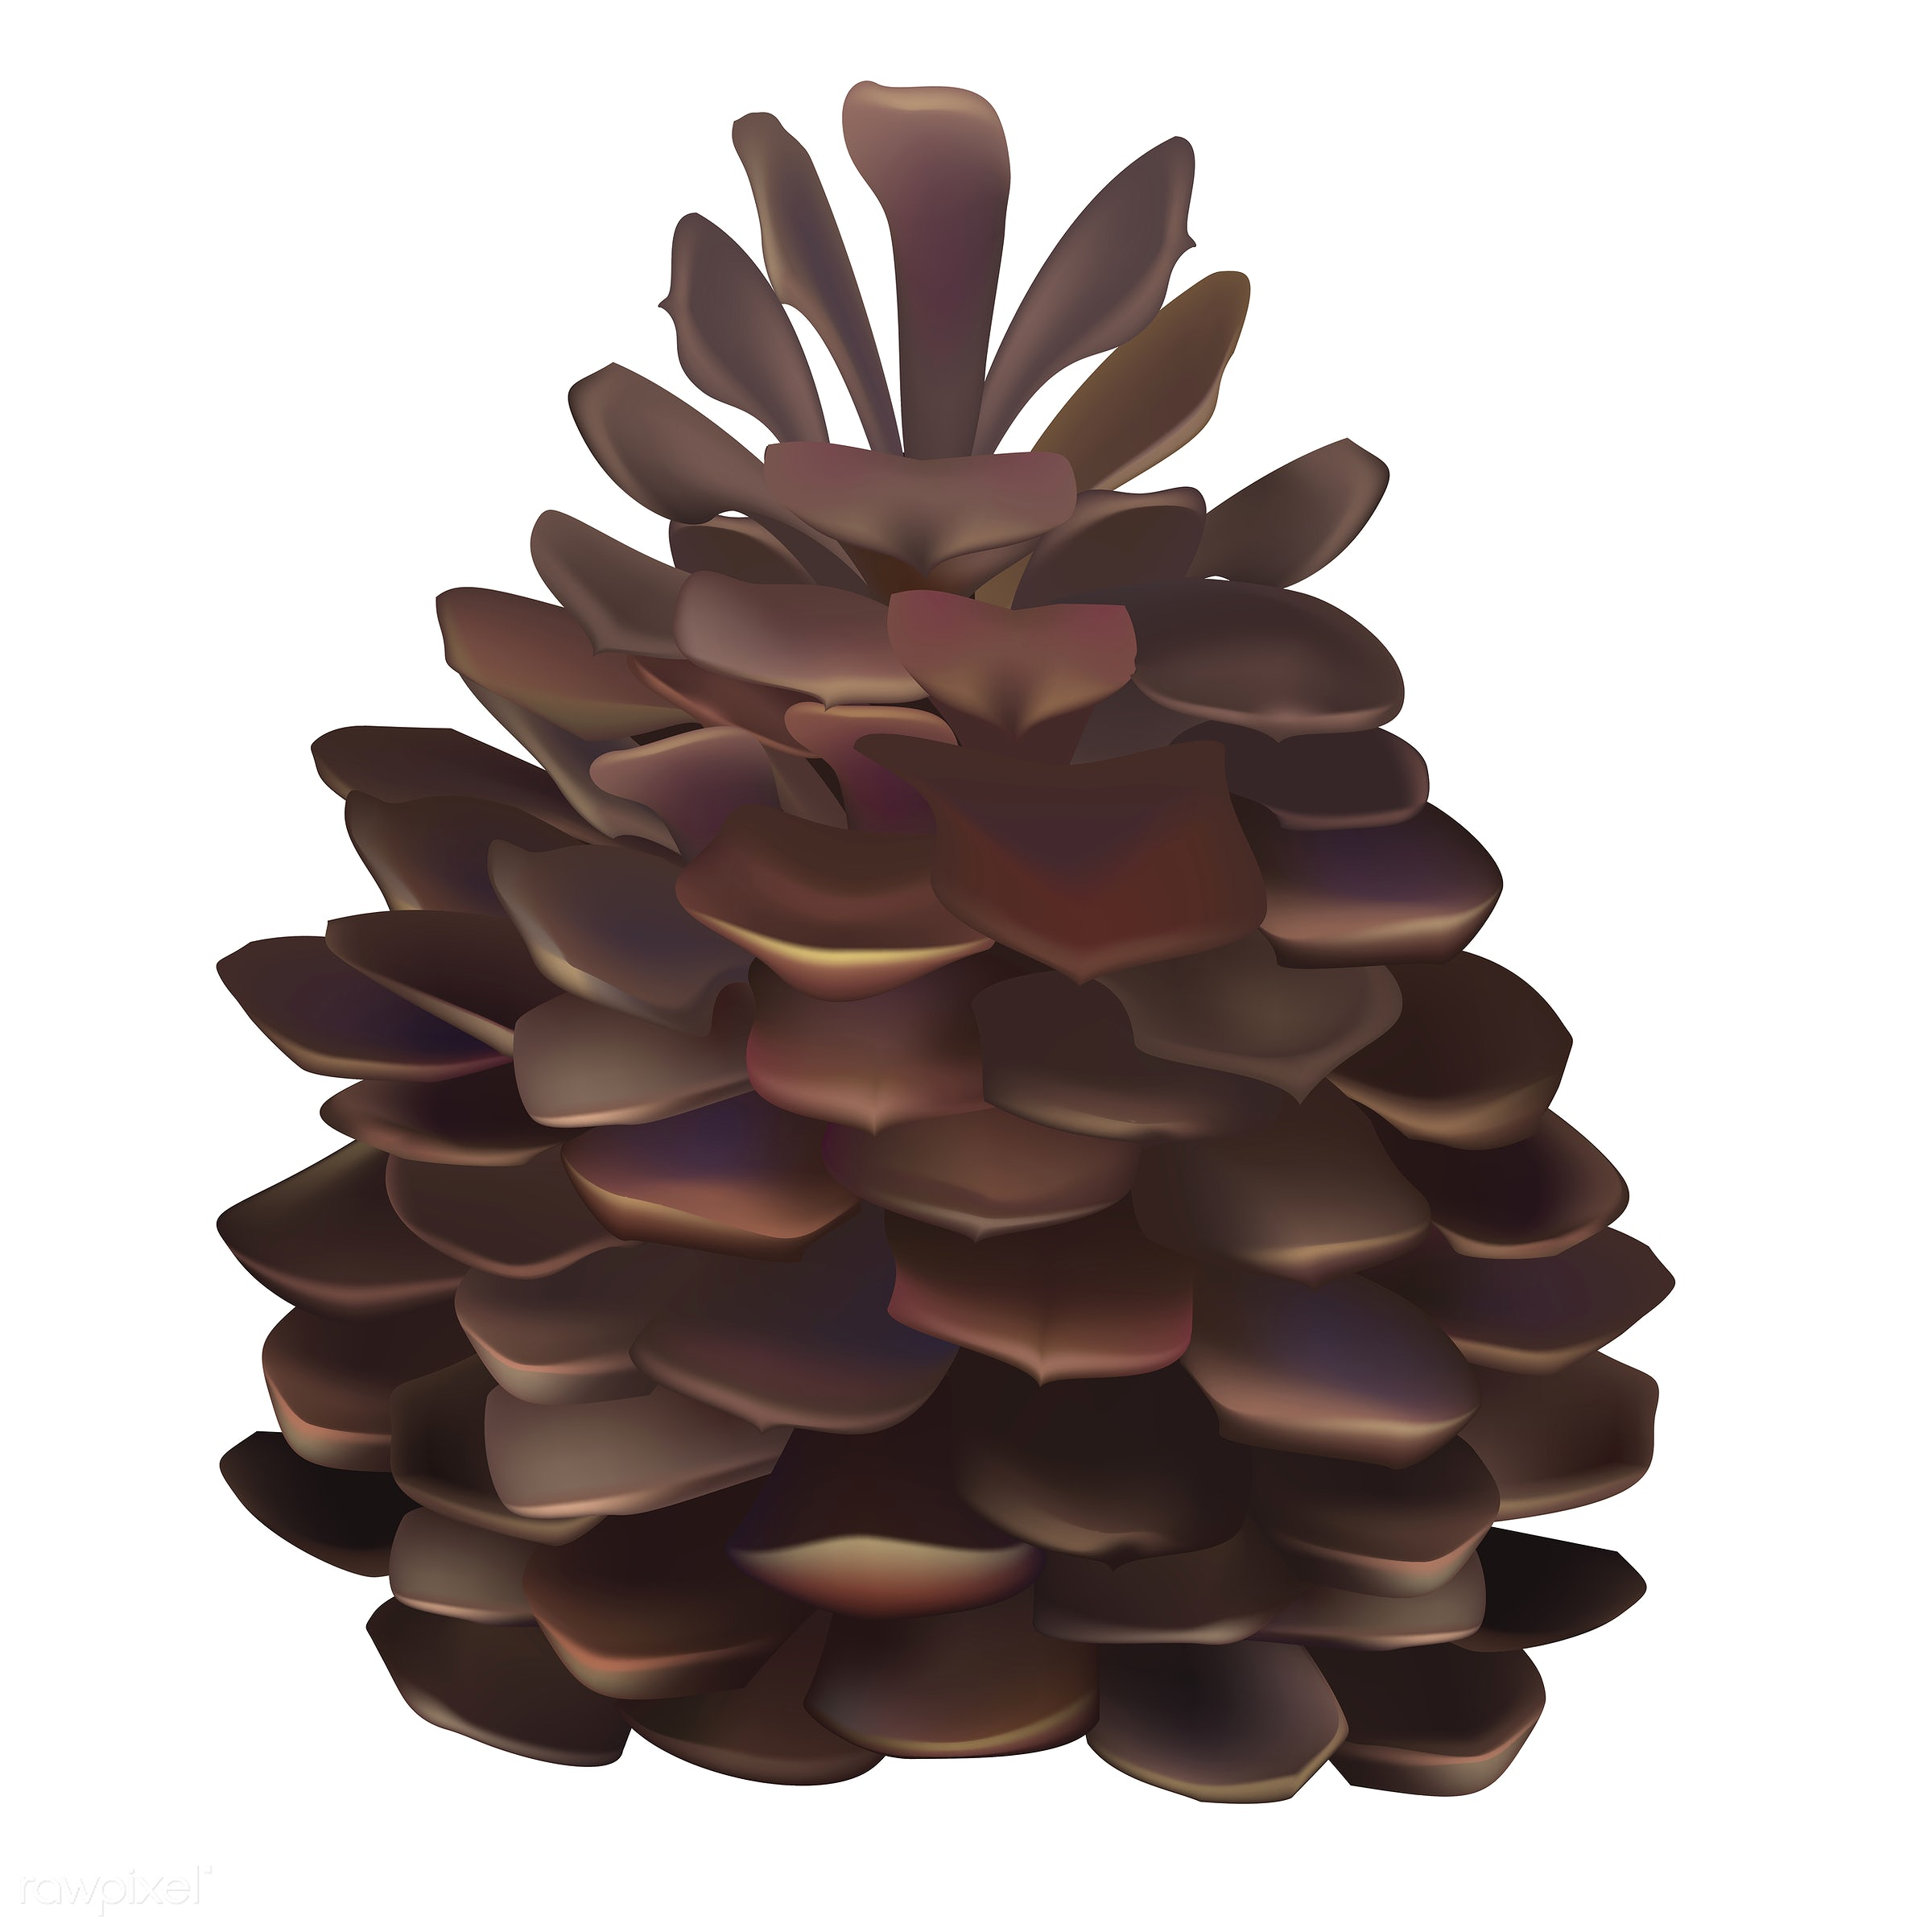 Illustration of pinecone isolated on white background - autumn, celebration, conifer cone, crops, elements, fall, festival,...